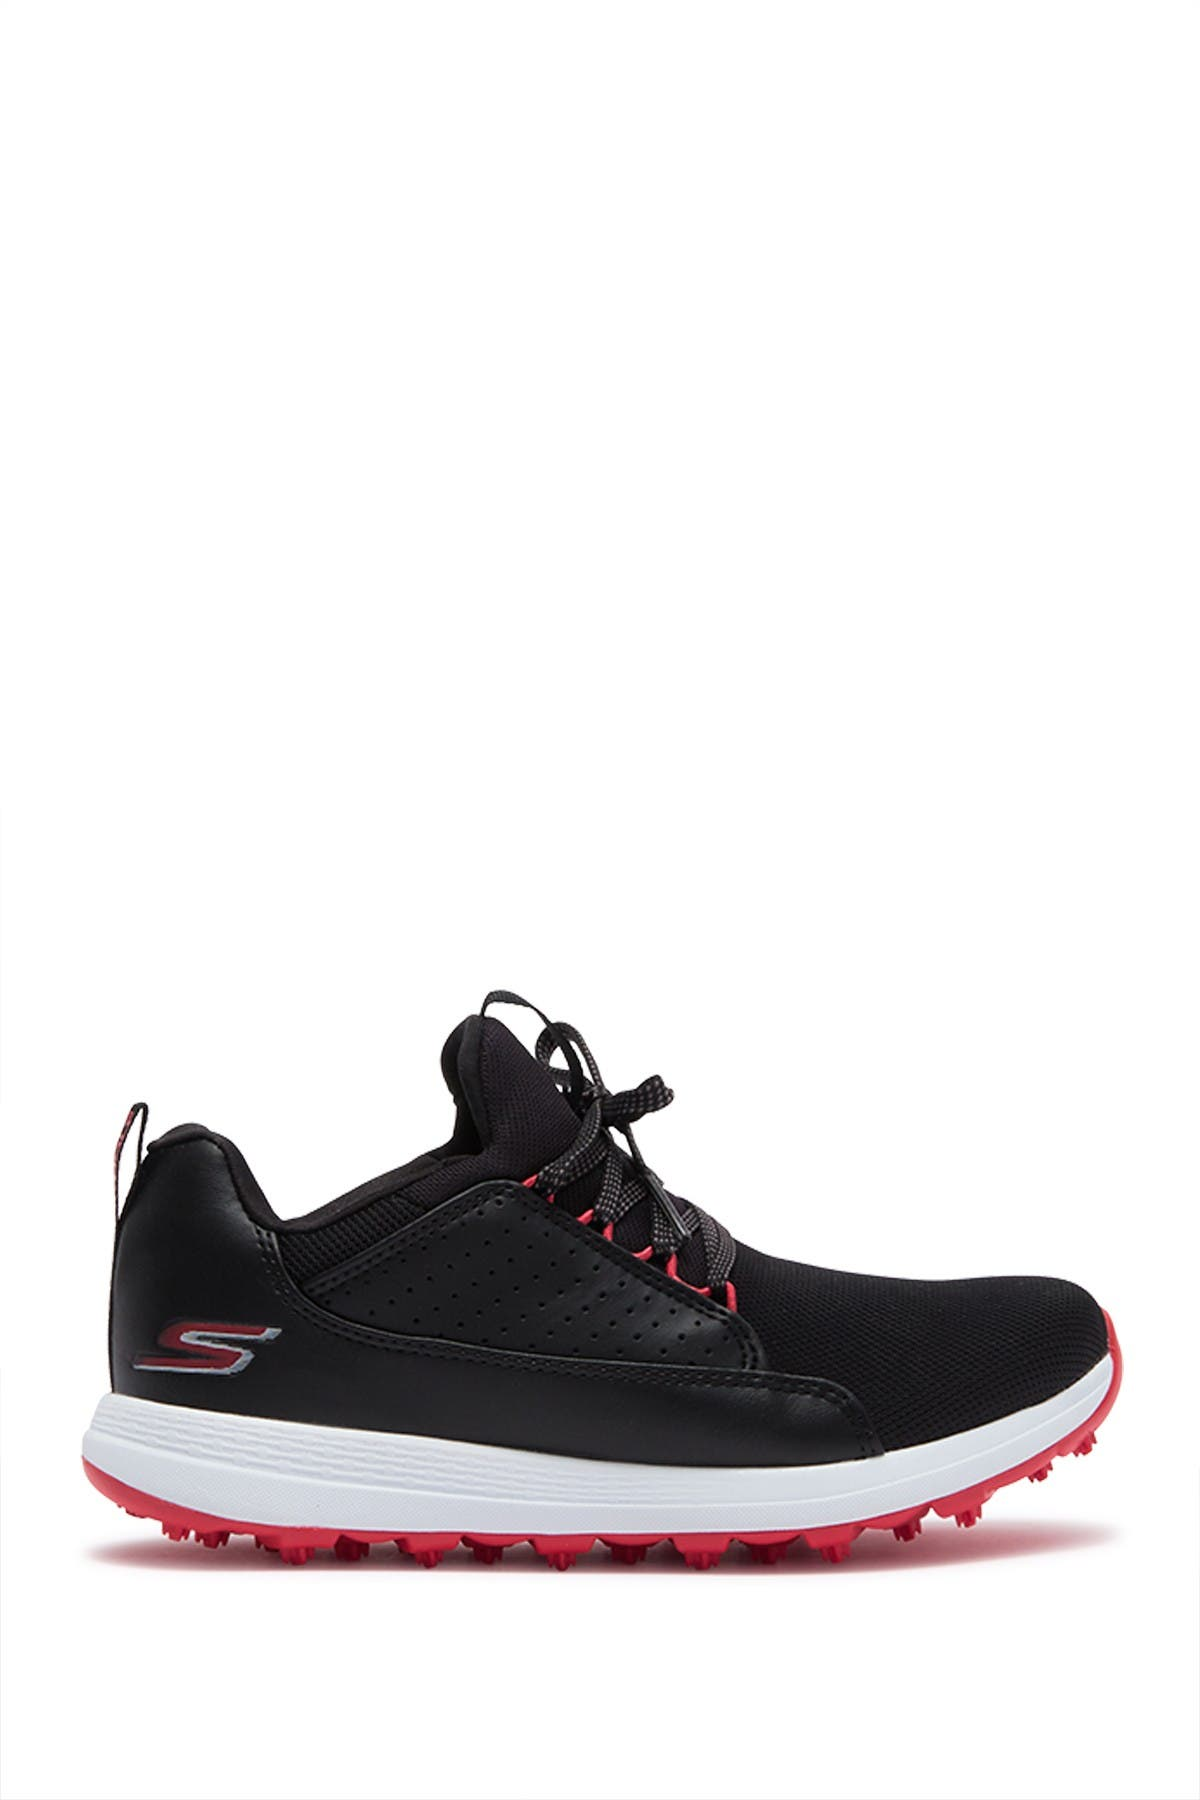 Image of Skechers Go Golf Lace Up Sneaker